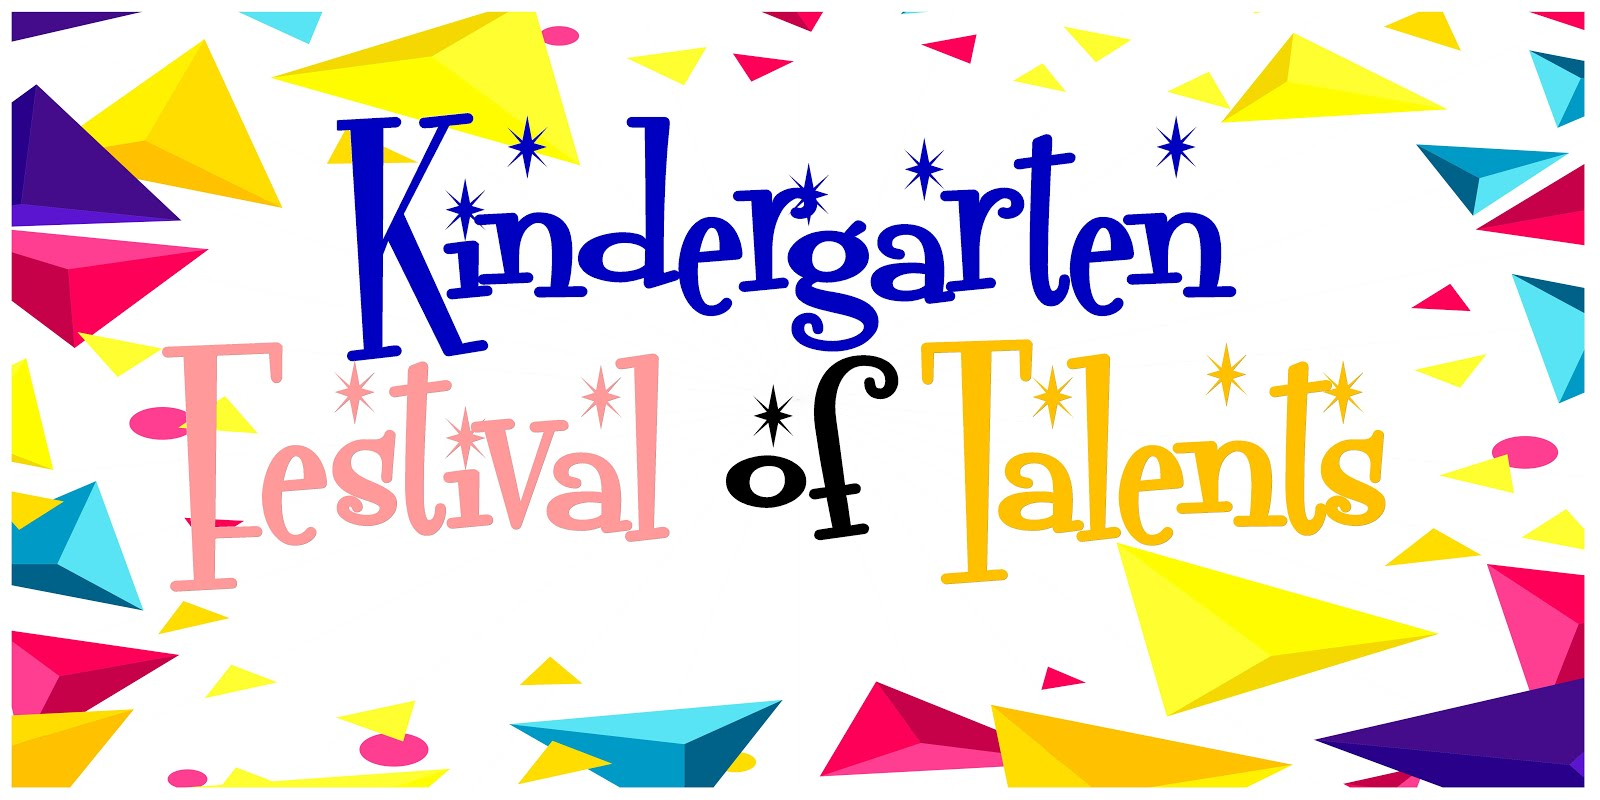 Kindergarten Festival Backdrop